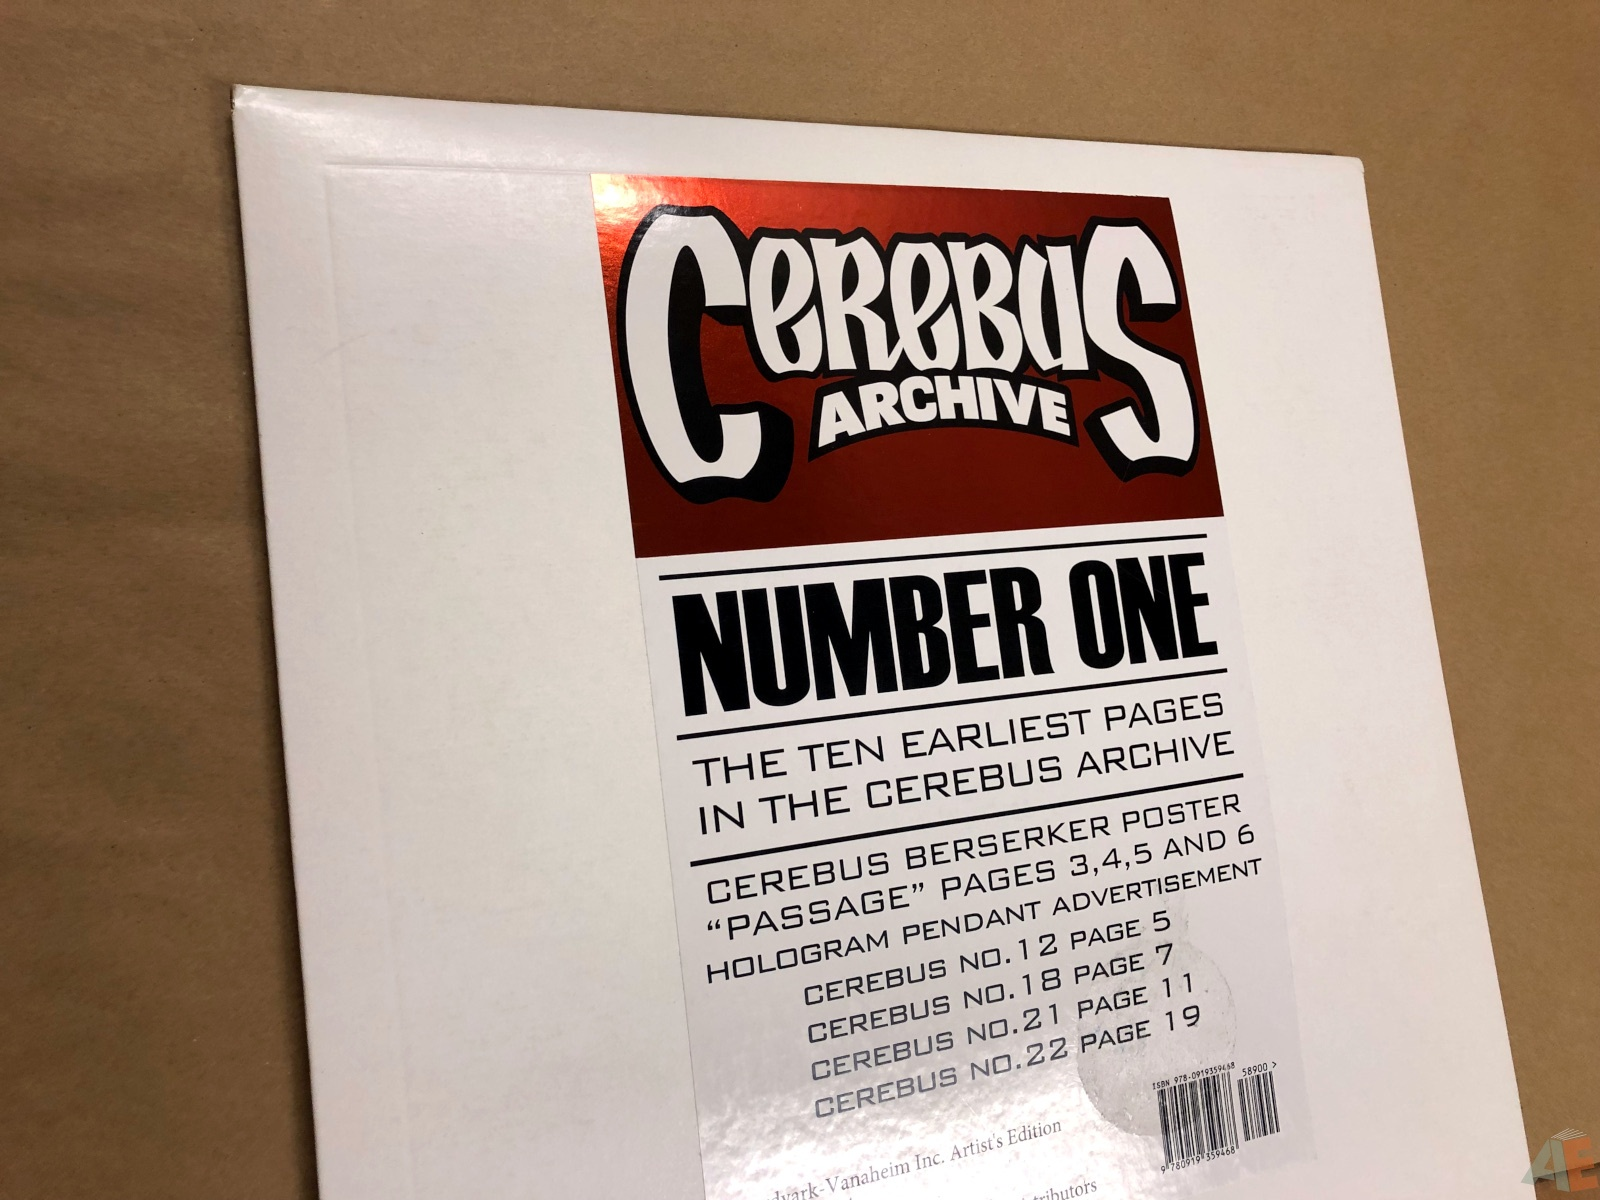 Cerebus Archive Number One 16